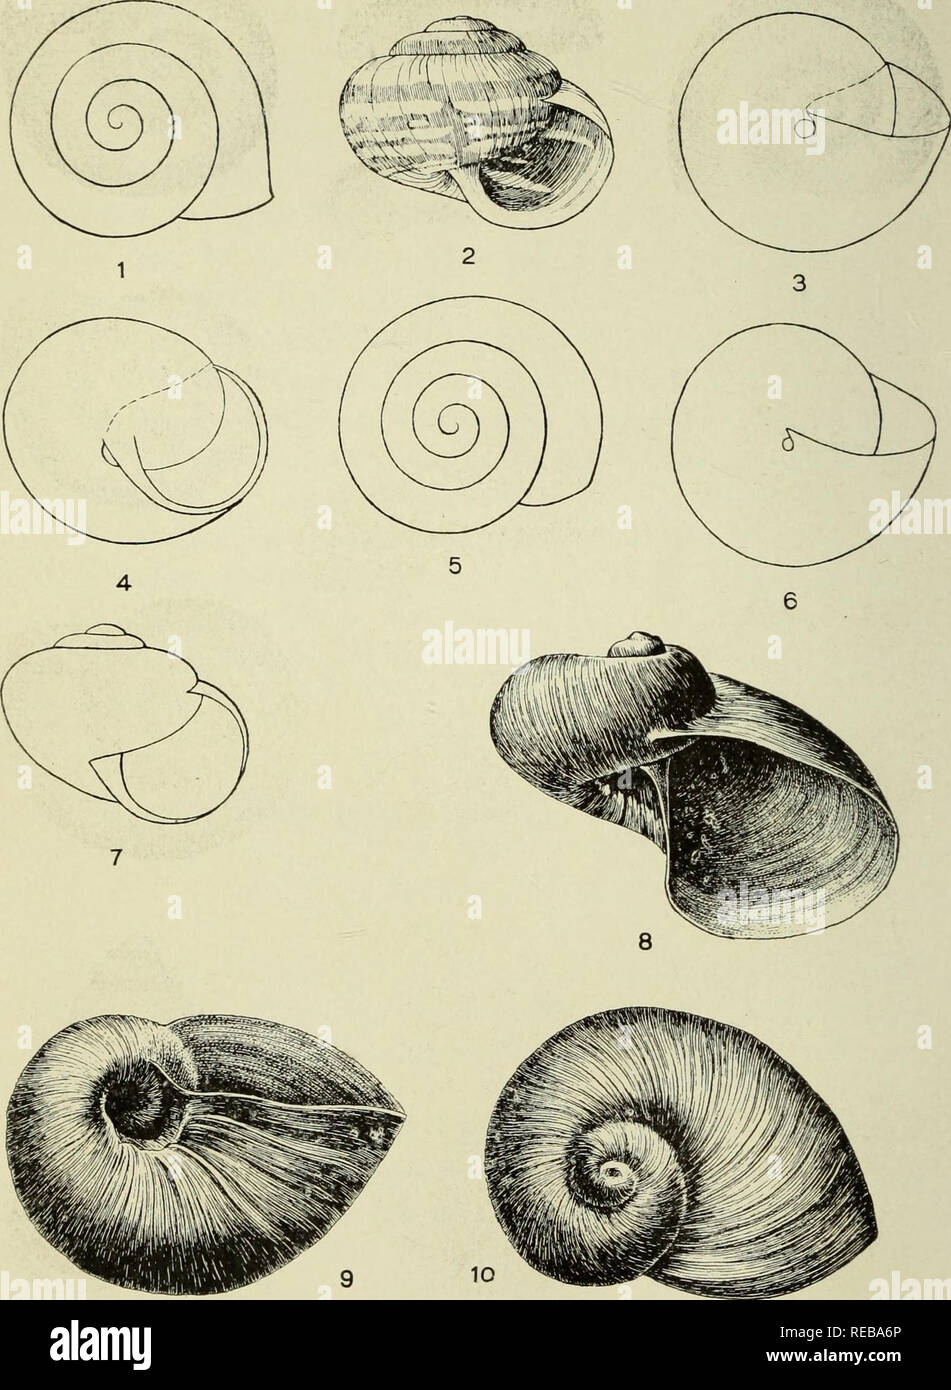 """. The Conchologists' exchange. Mollusks. THE NAUTILUS, XXXIl. PLATE VI. 1-4. PRATICOLELLA CAMP! CLAPP & FERRISS. X5. 5-7. """" GRLSEOLA PFR,. YOUNG. X5. 8-10. STYLOBATES yENEUS DALL. SLIGHTLY OVER Vi NAT. SIZE.. Please note that these images are extracted from scanned page images that may have been digitally enhanced for readability - coloration and appearance of these illustrations may not perfectly resemble the original work.. Averell, William D. Philadelphia, Wm. D. Averell Stock Photo"""